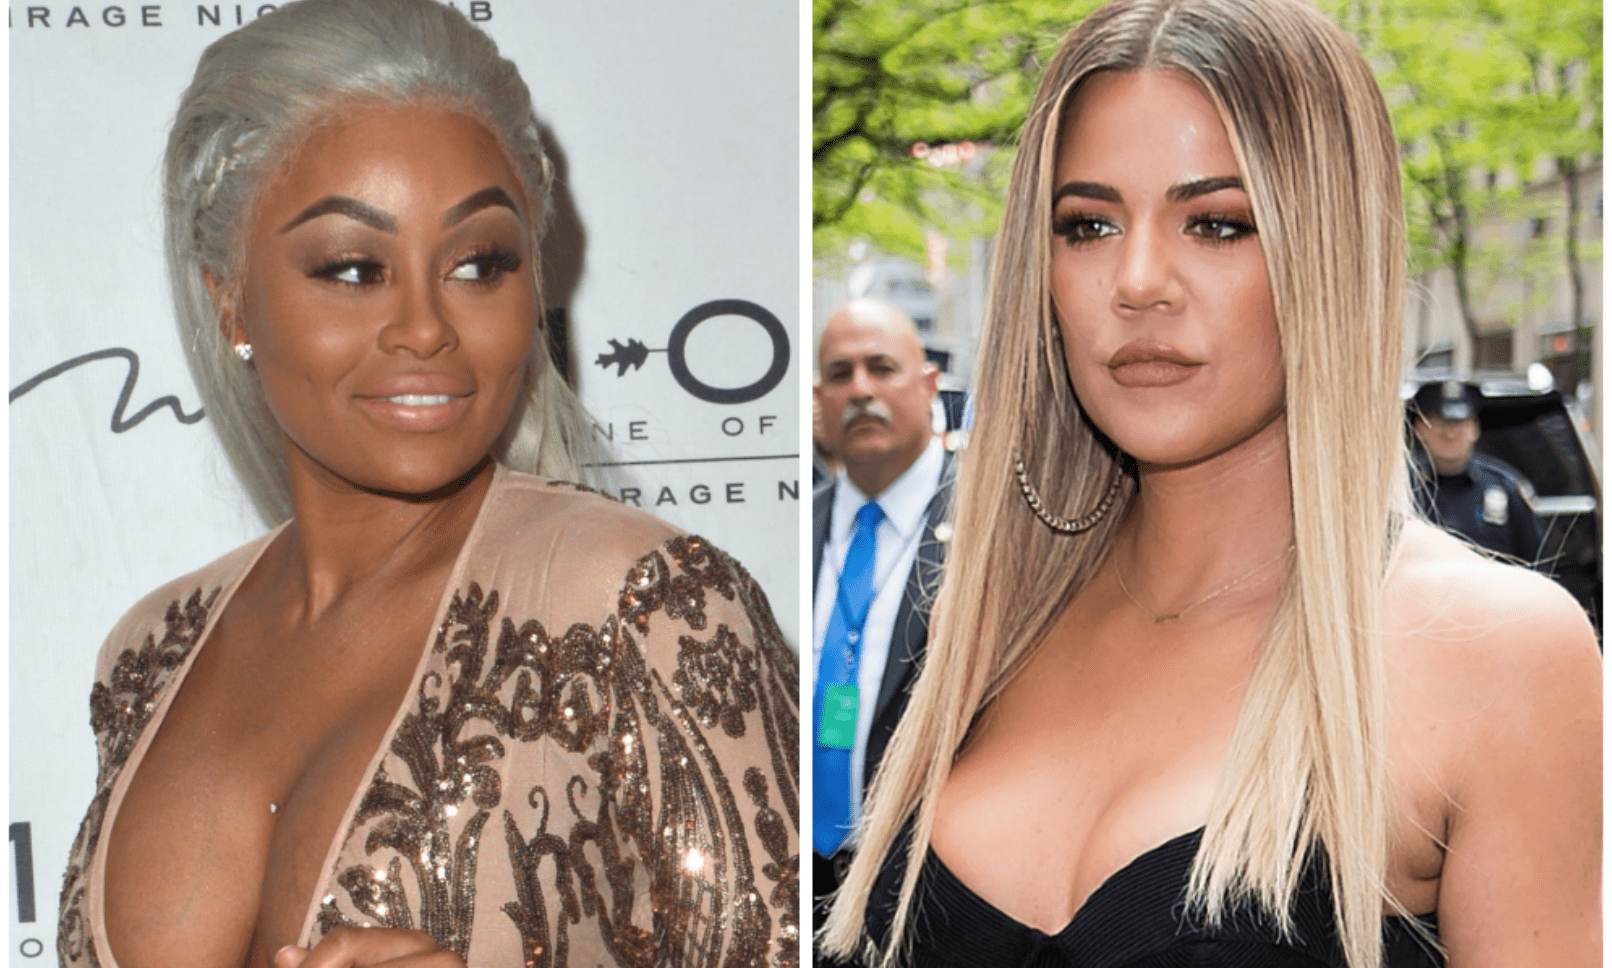 KUWK: Blac Chyna Posts About Wanting To Fight Khloe Kardashian And Fans Are Confused! #BlacChyna, #KhloeKardashian, #Kuwk, #TheKardashians celebrityinsider.org #Entertainment #celebrityinsider #celebritynews #celebrities #celebrity